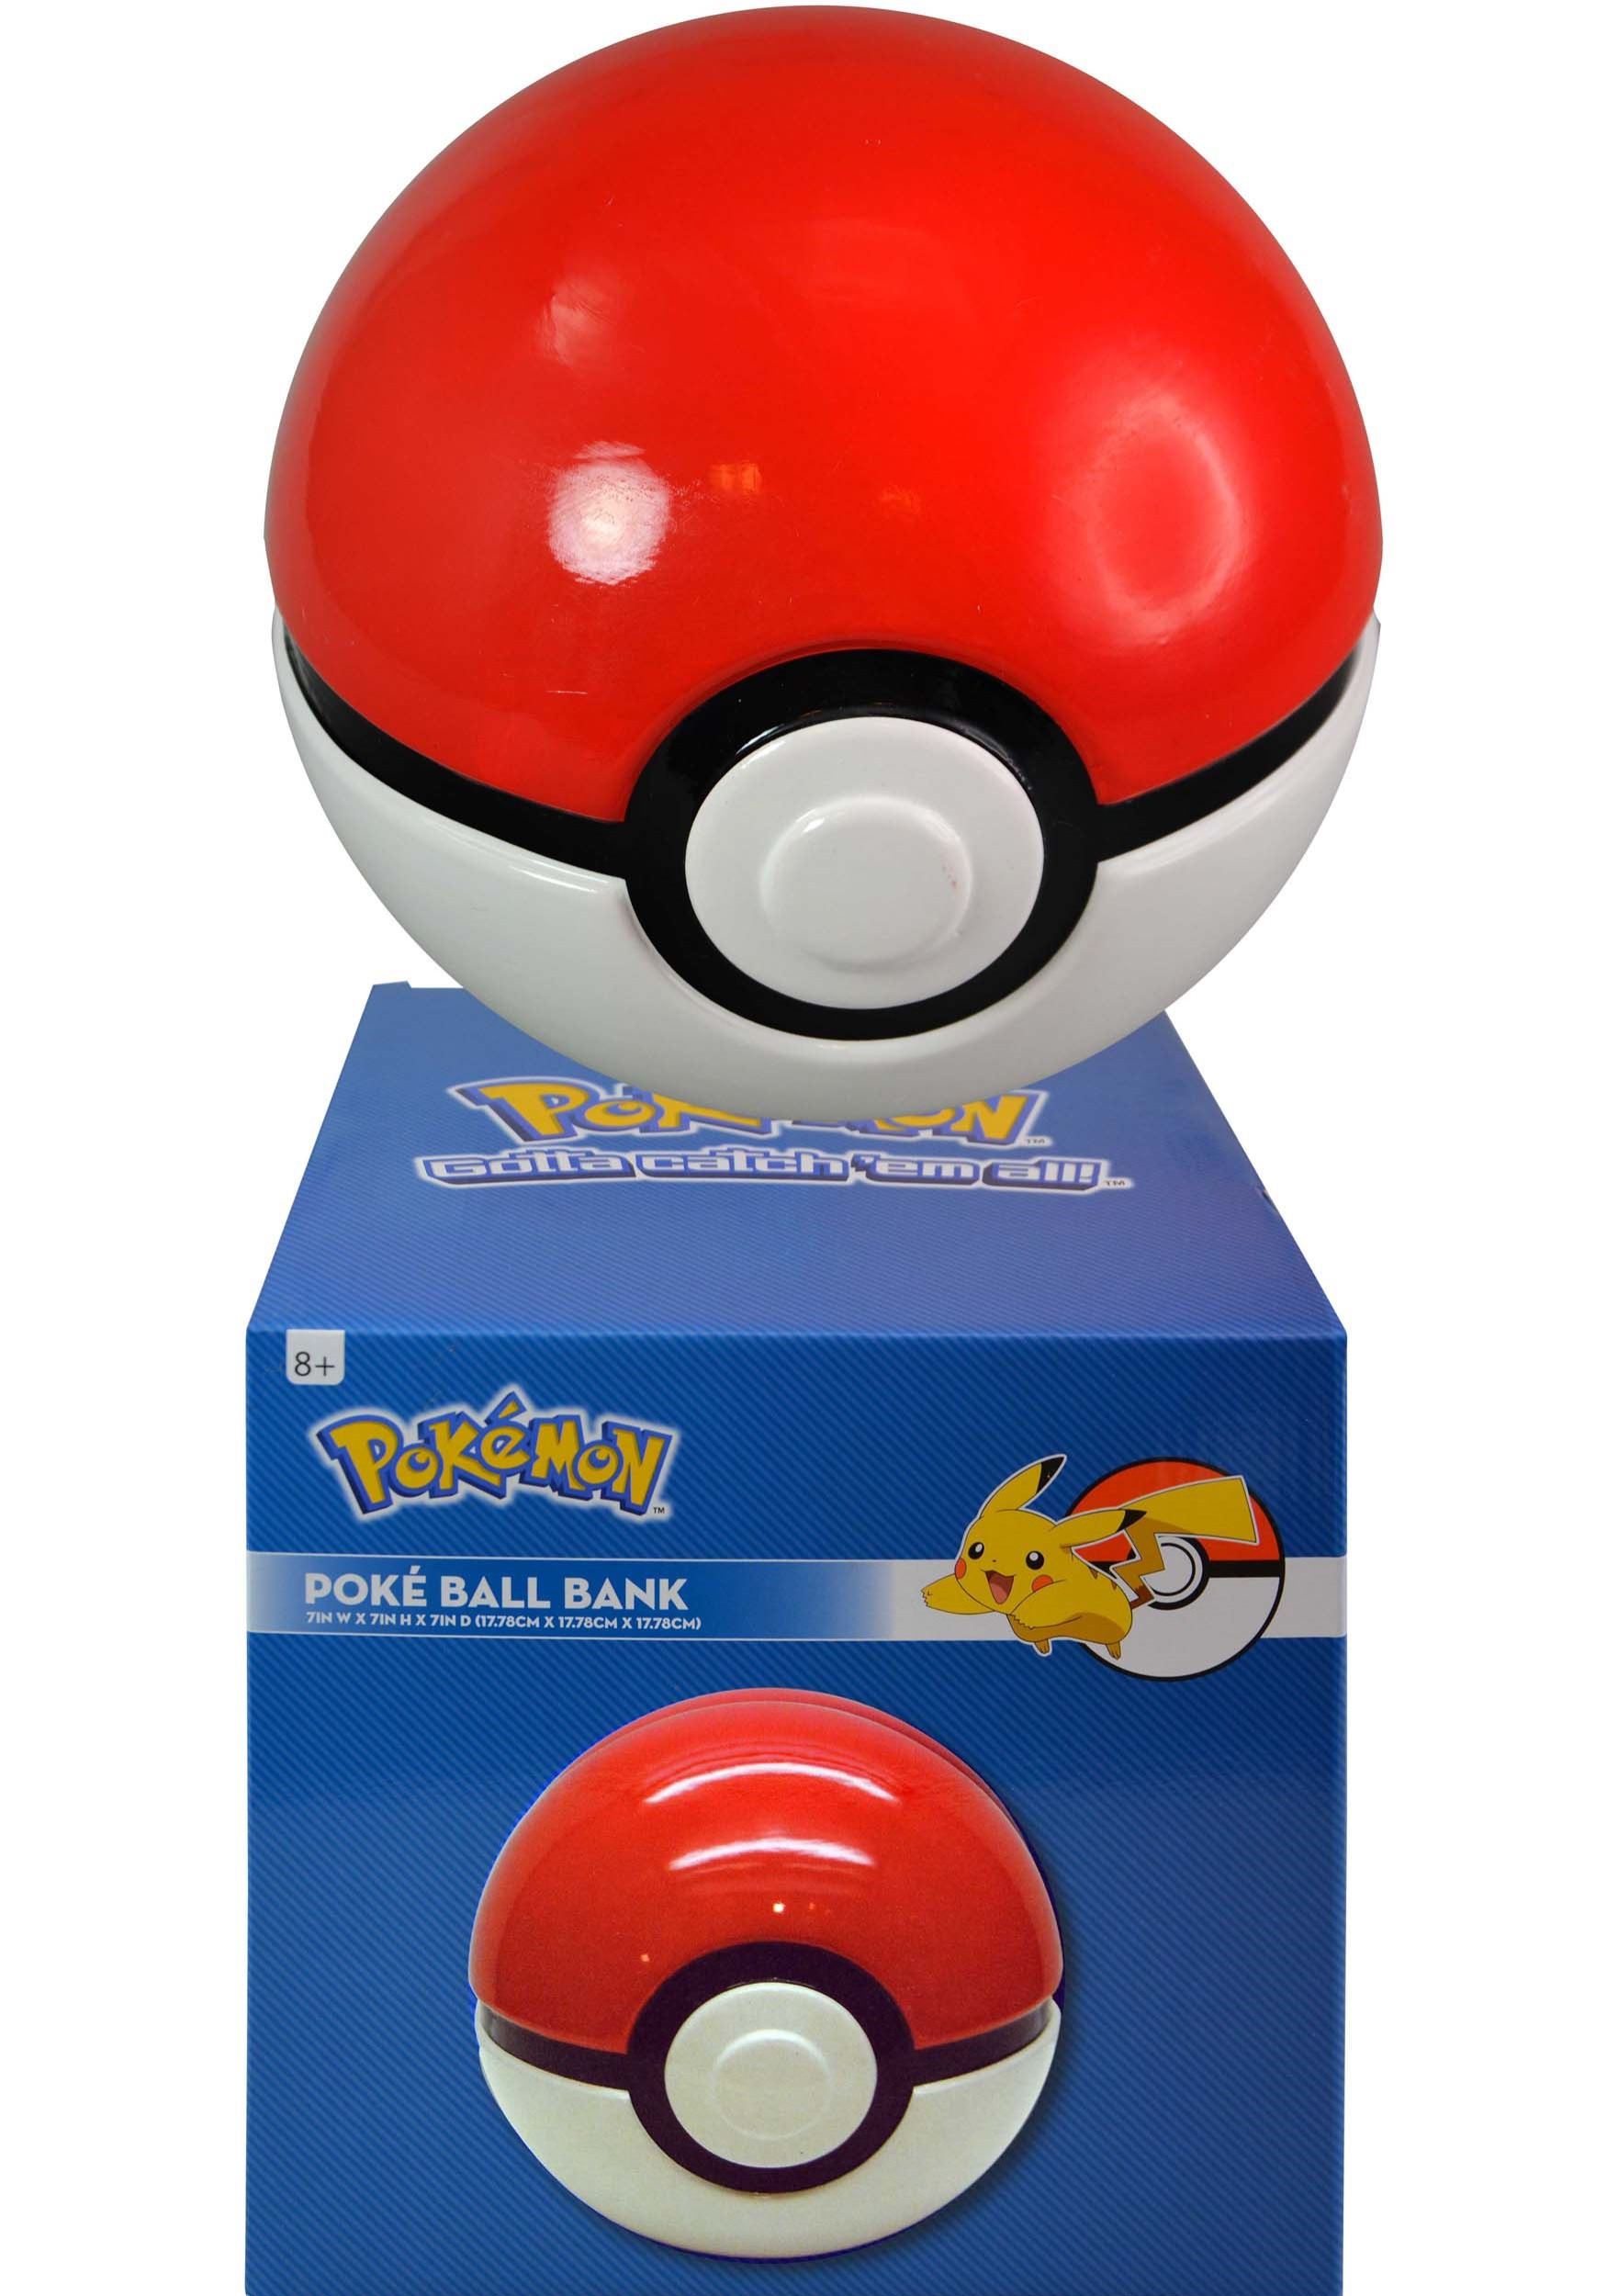 Pokemon Poke Ball Ceramic Bank UPDFK23572322